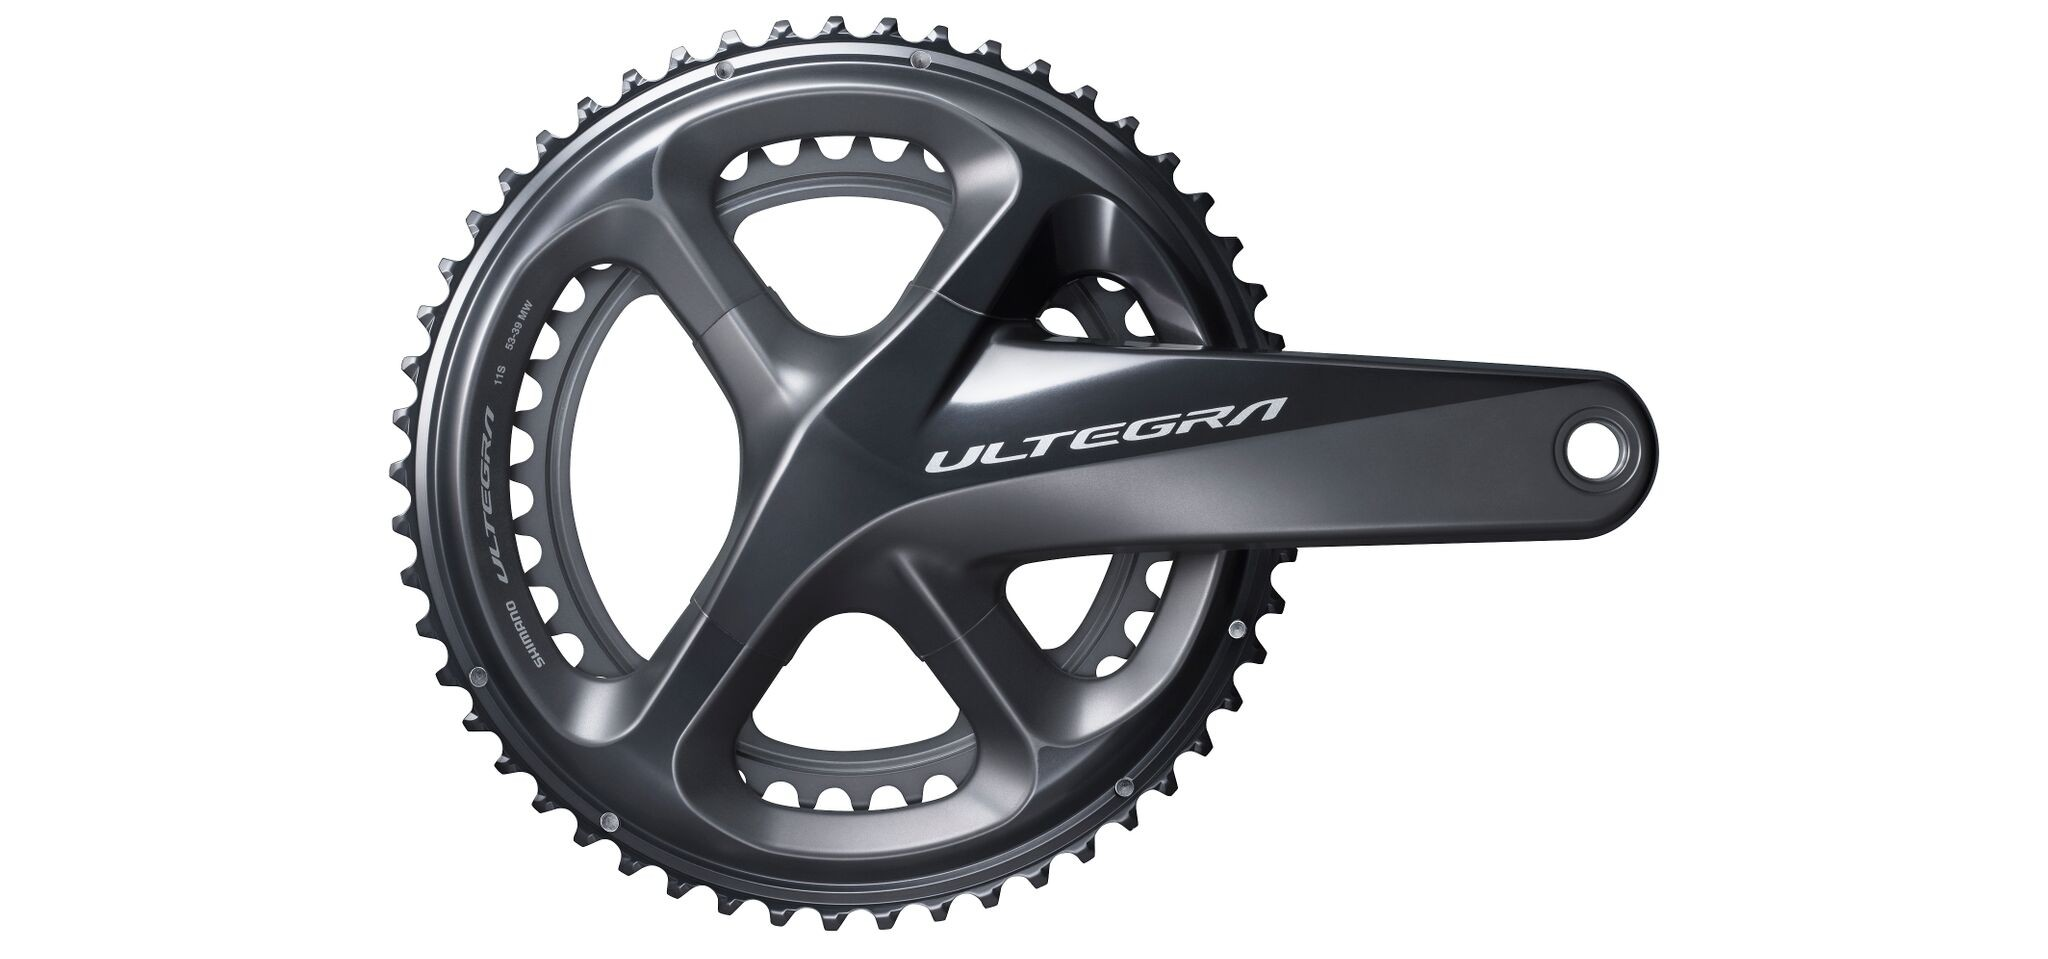 New groupset electronic and mechanic Shimano Ultegra R8000: chain, cassette, front gear, rear gear, brake, caliper, shifter, lift, accesories